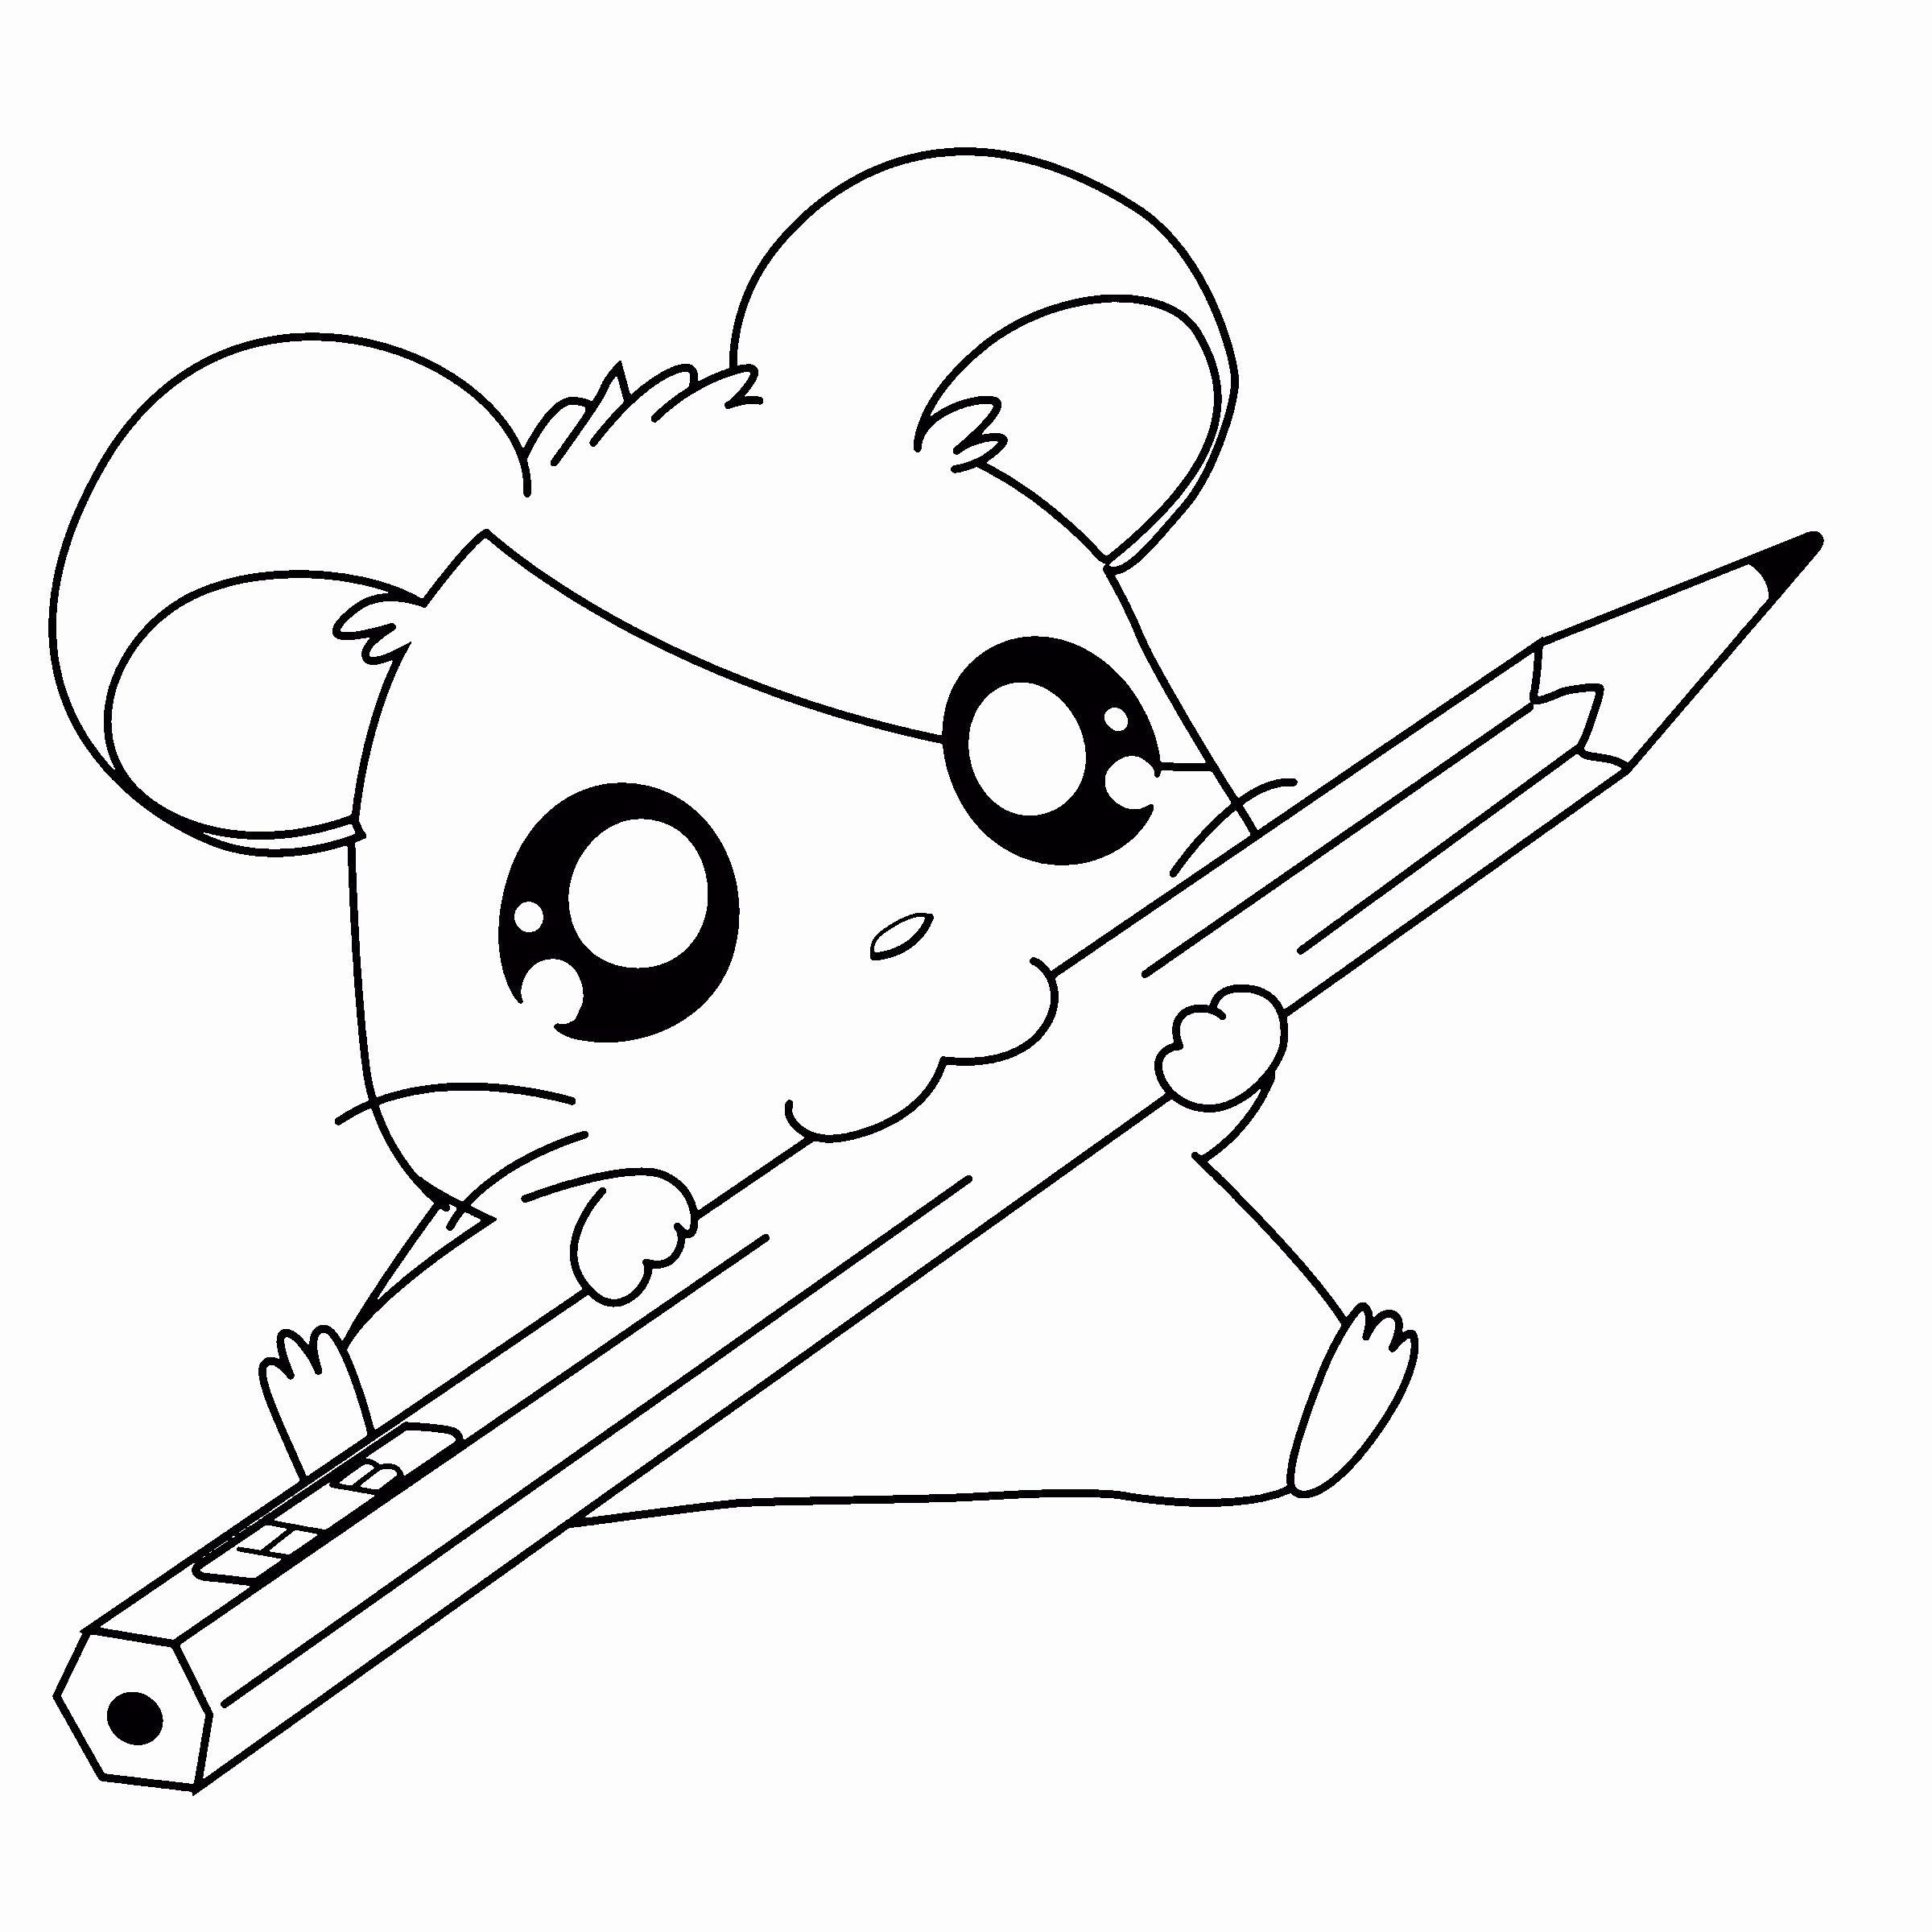 Cute Cartoon Animals Coloring Pages Lovely Cute Kawaii Animal Coloring Pages In 2020 Puppy Coloring Pages Animal Coloring Books Unicorn Coloring Pages